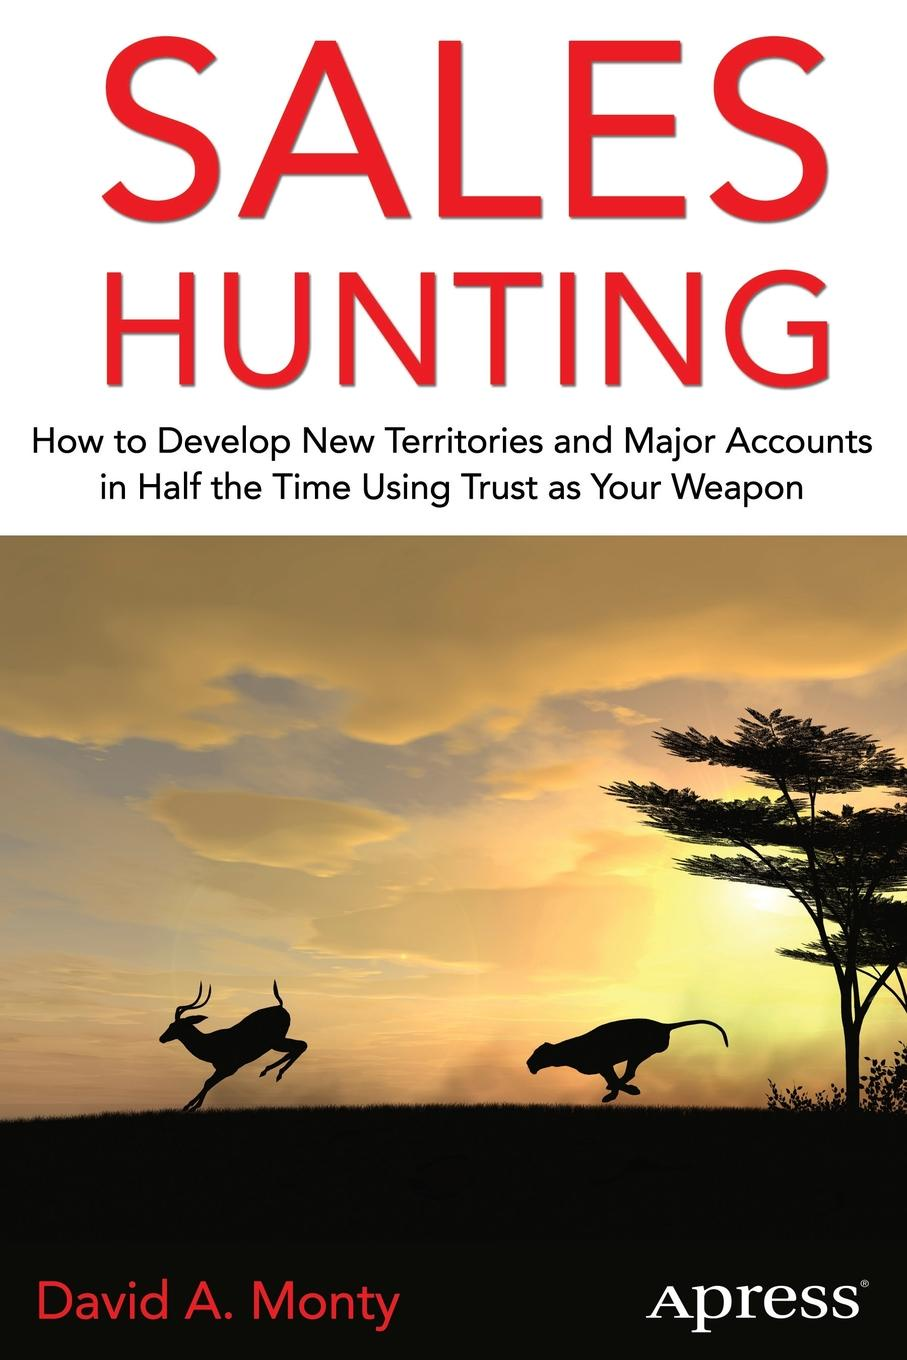 David A. Monty Sales Hunting. How to Develop New Territories and Major Accounts in Half the Time Using Trust as Your Weapon